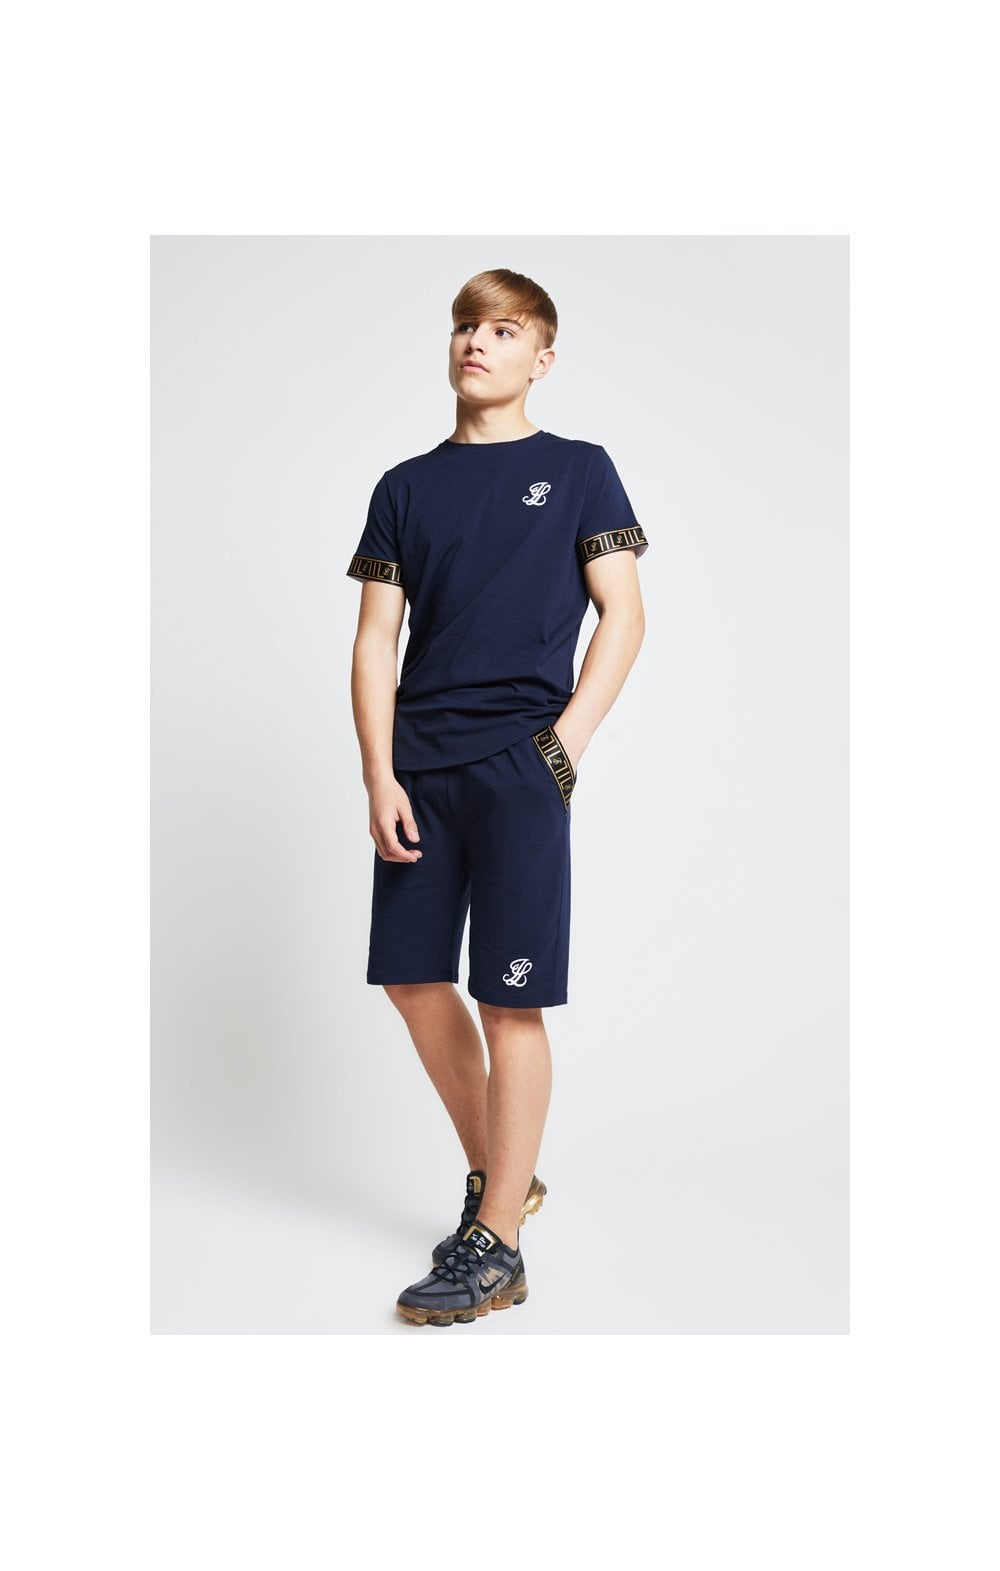 Illusive London Tech Tee - Navy (3)